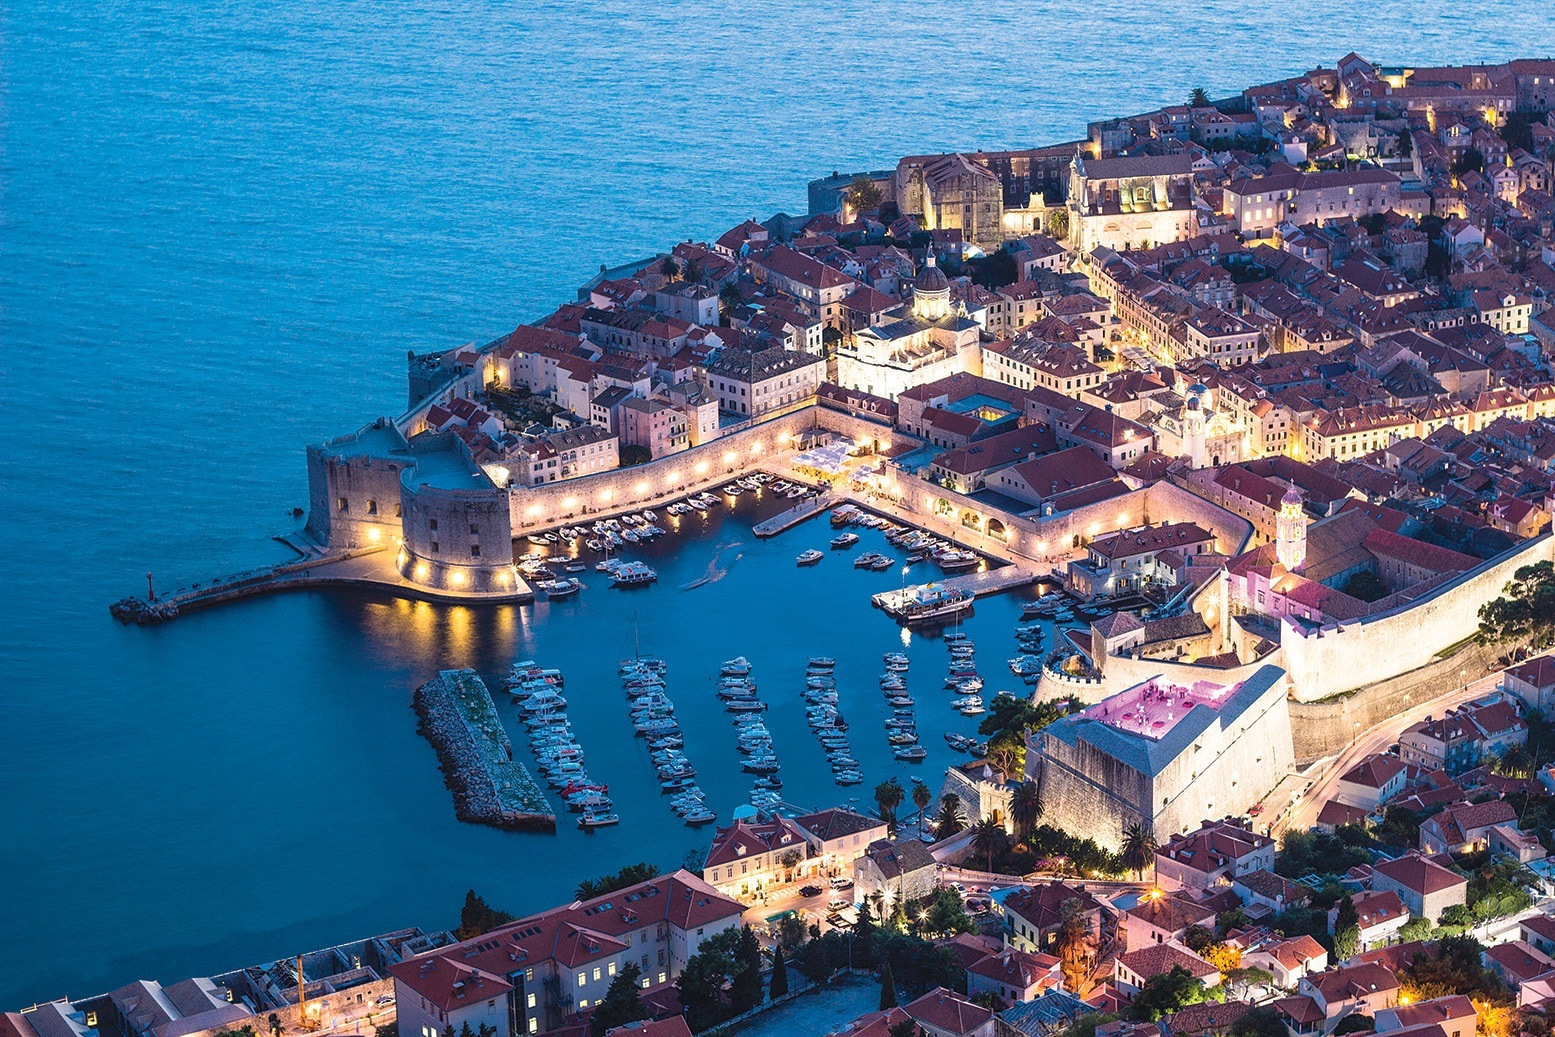 10 things you didn't know about Dubrovnik - go dubrovnik